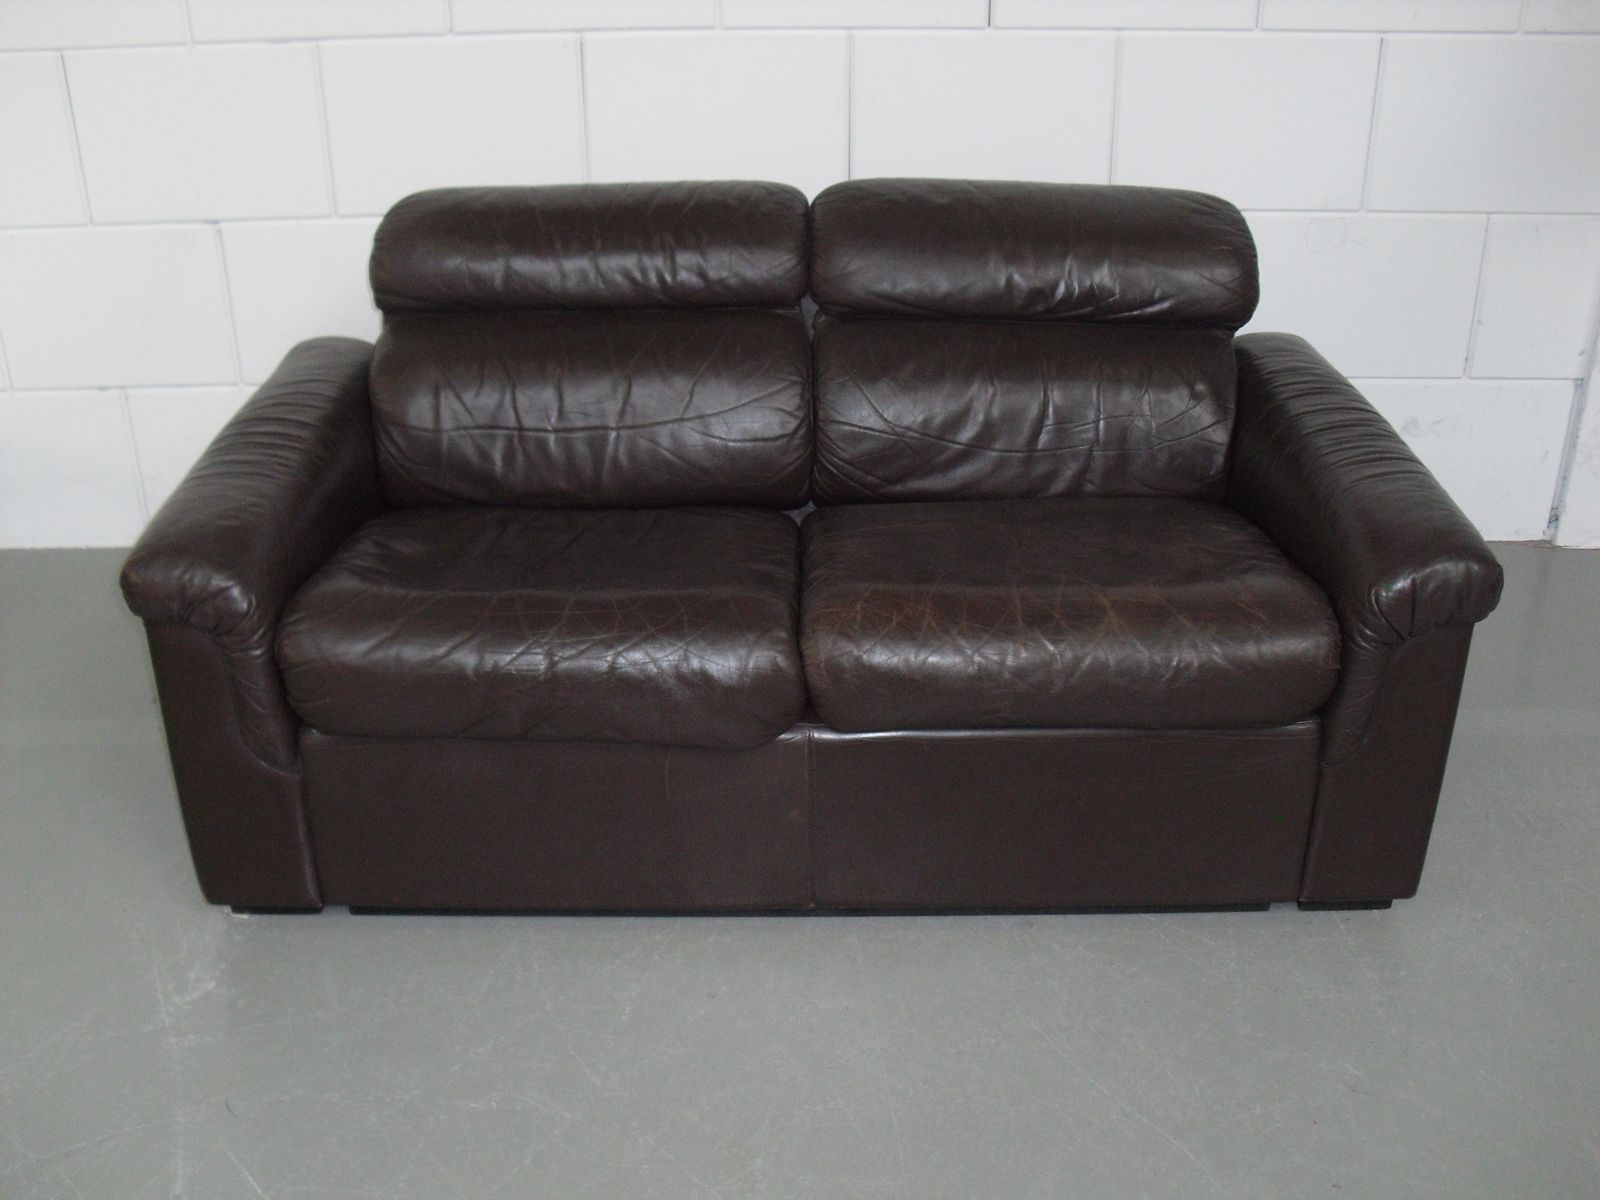 Soft Leather Two Seater Sofa By Oy Bj Dahlqvist Ab For Bd Furniture 1960s For Sale At Pamono